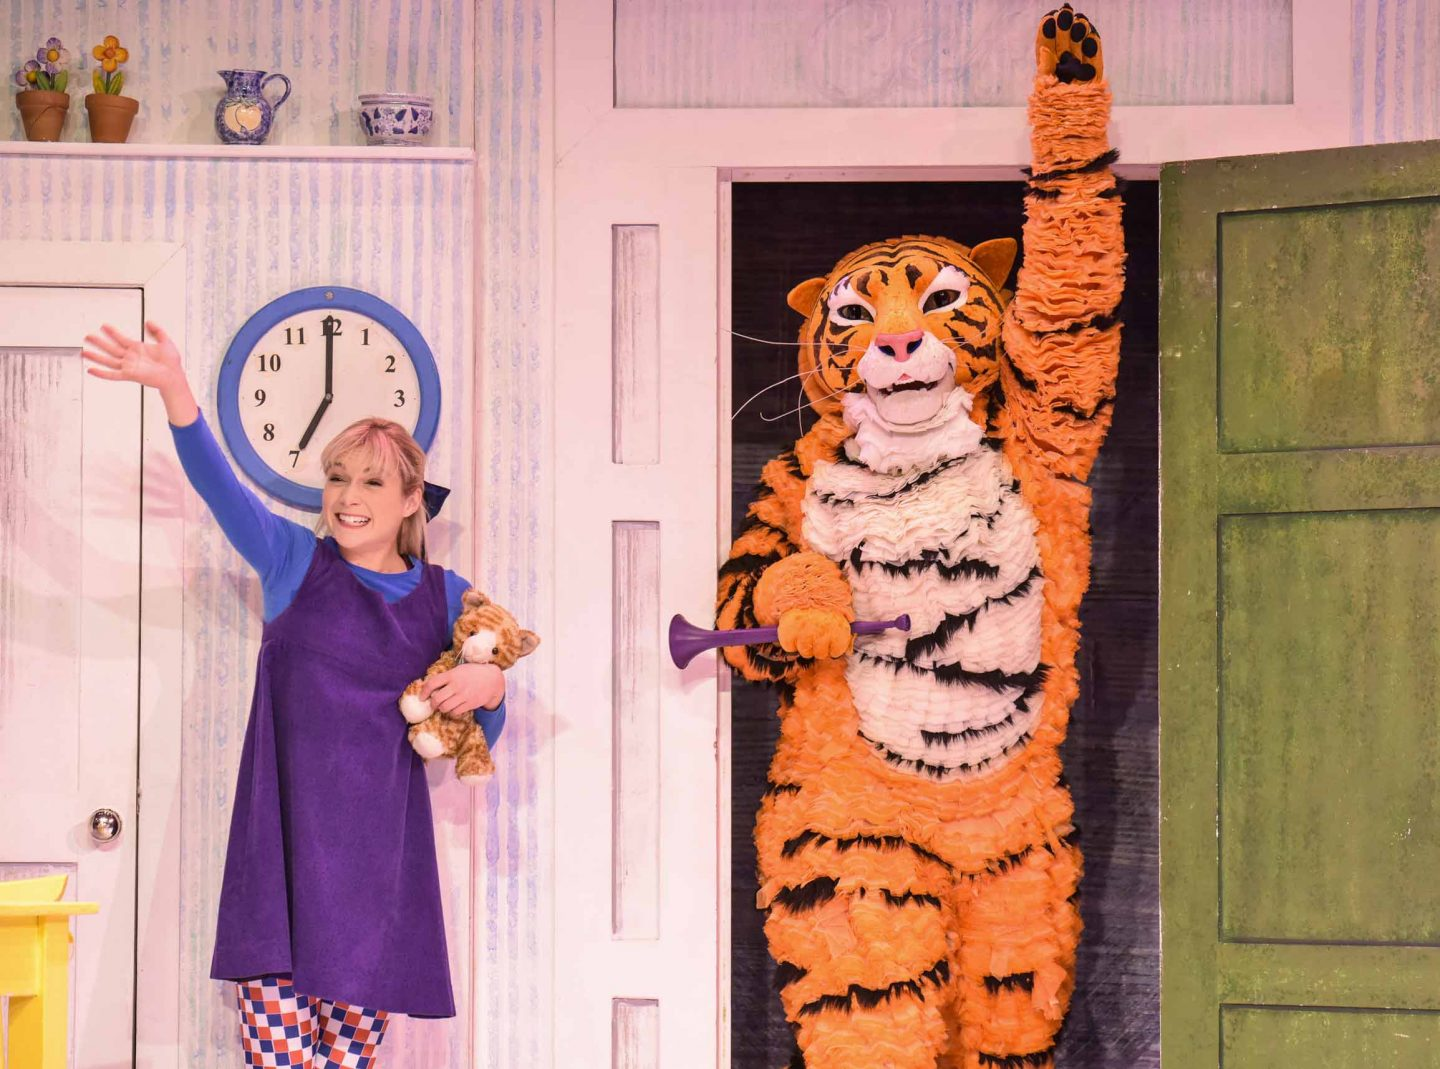 Jocelyn Zackon as Sophie, David Scotland as Tiger wave at the audience